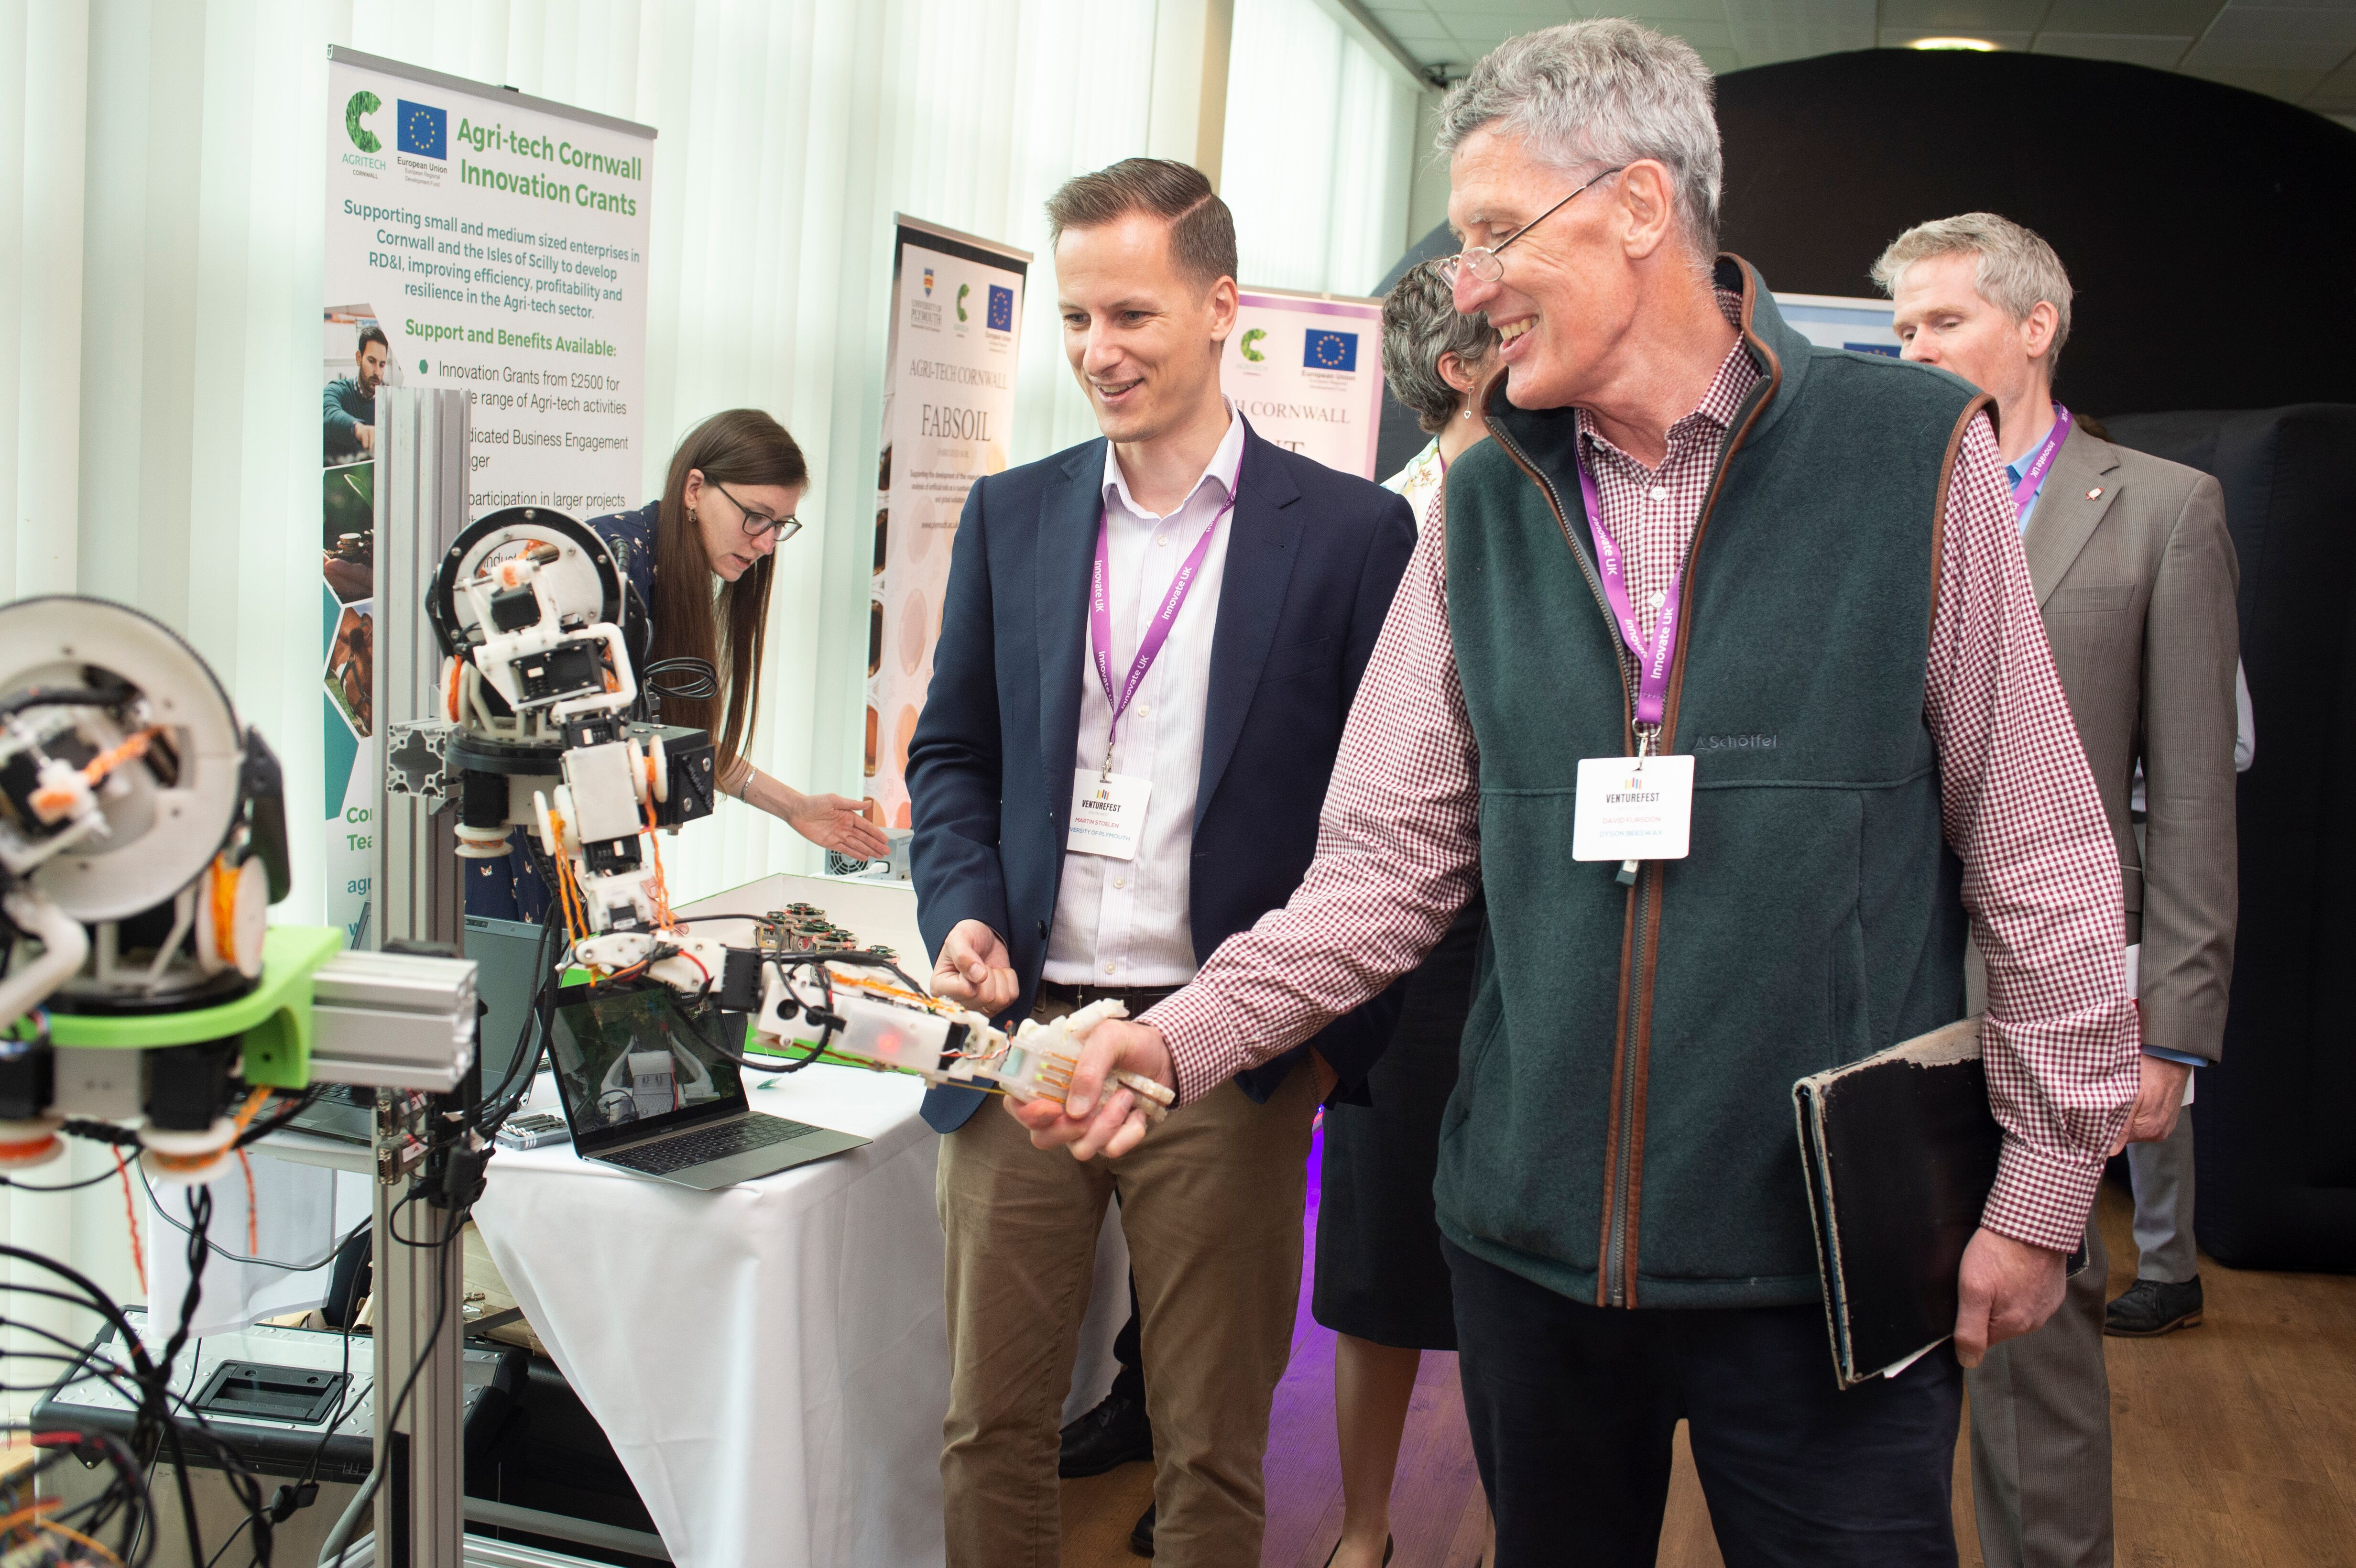 South West Innovation Expo 2021